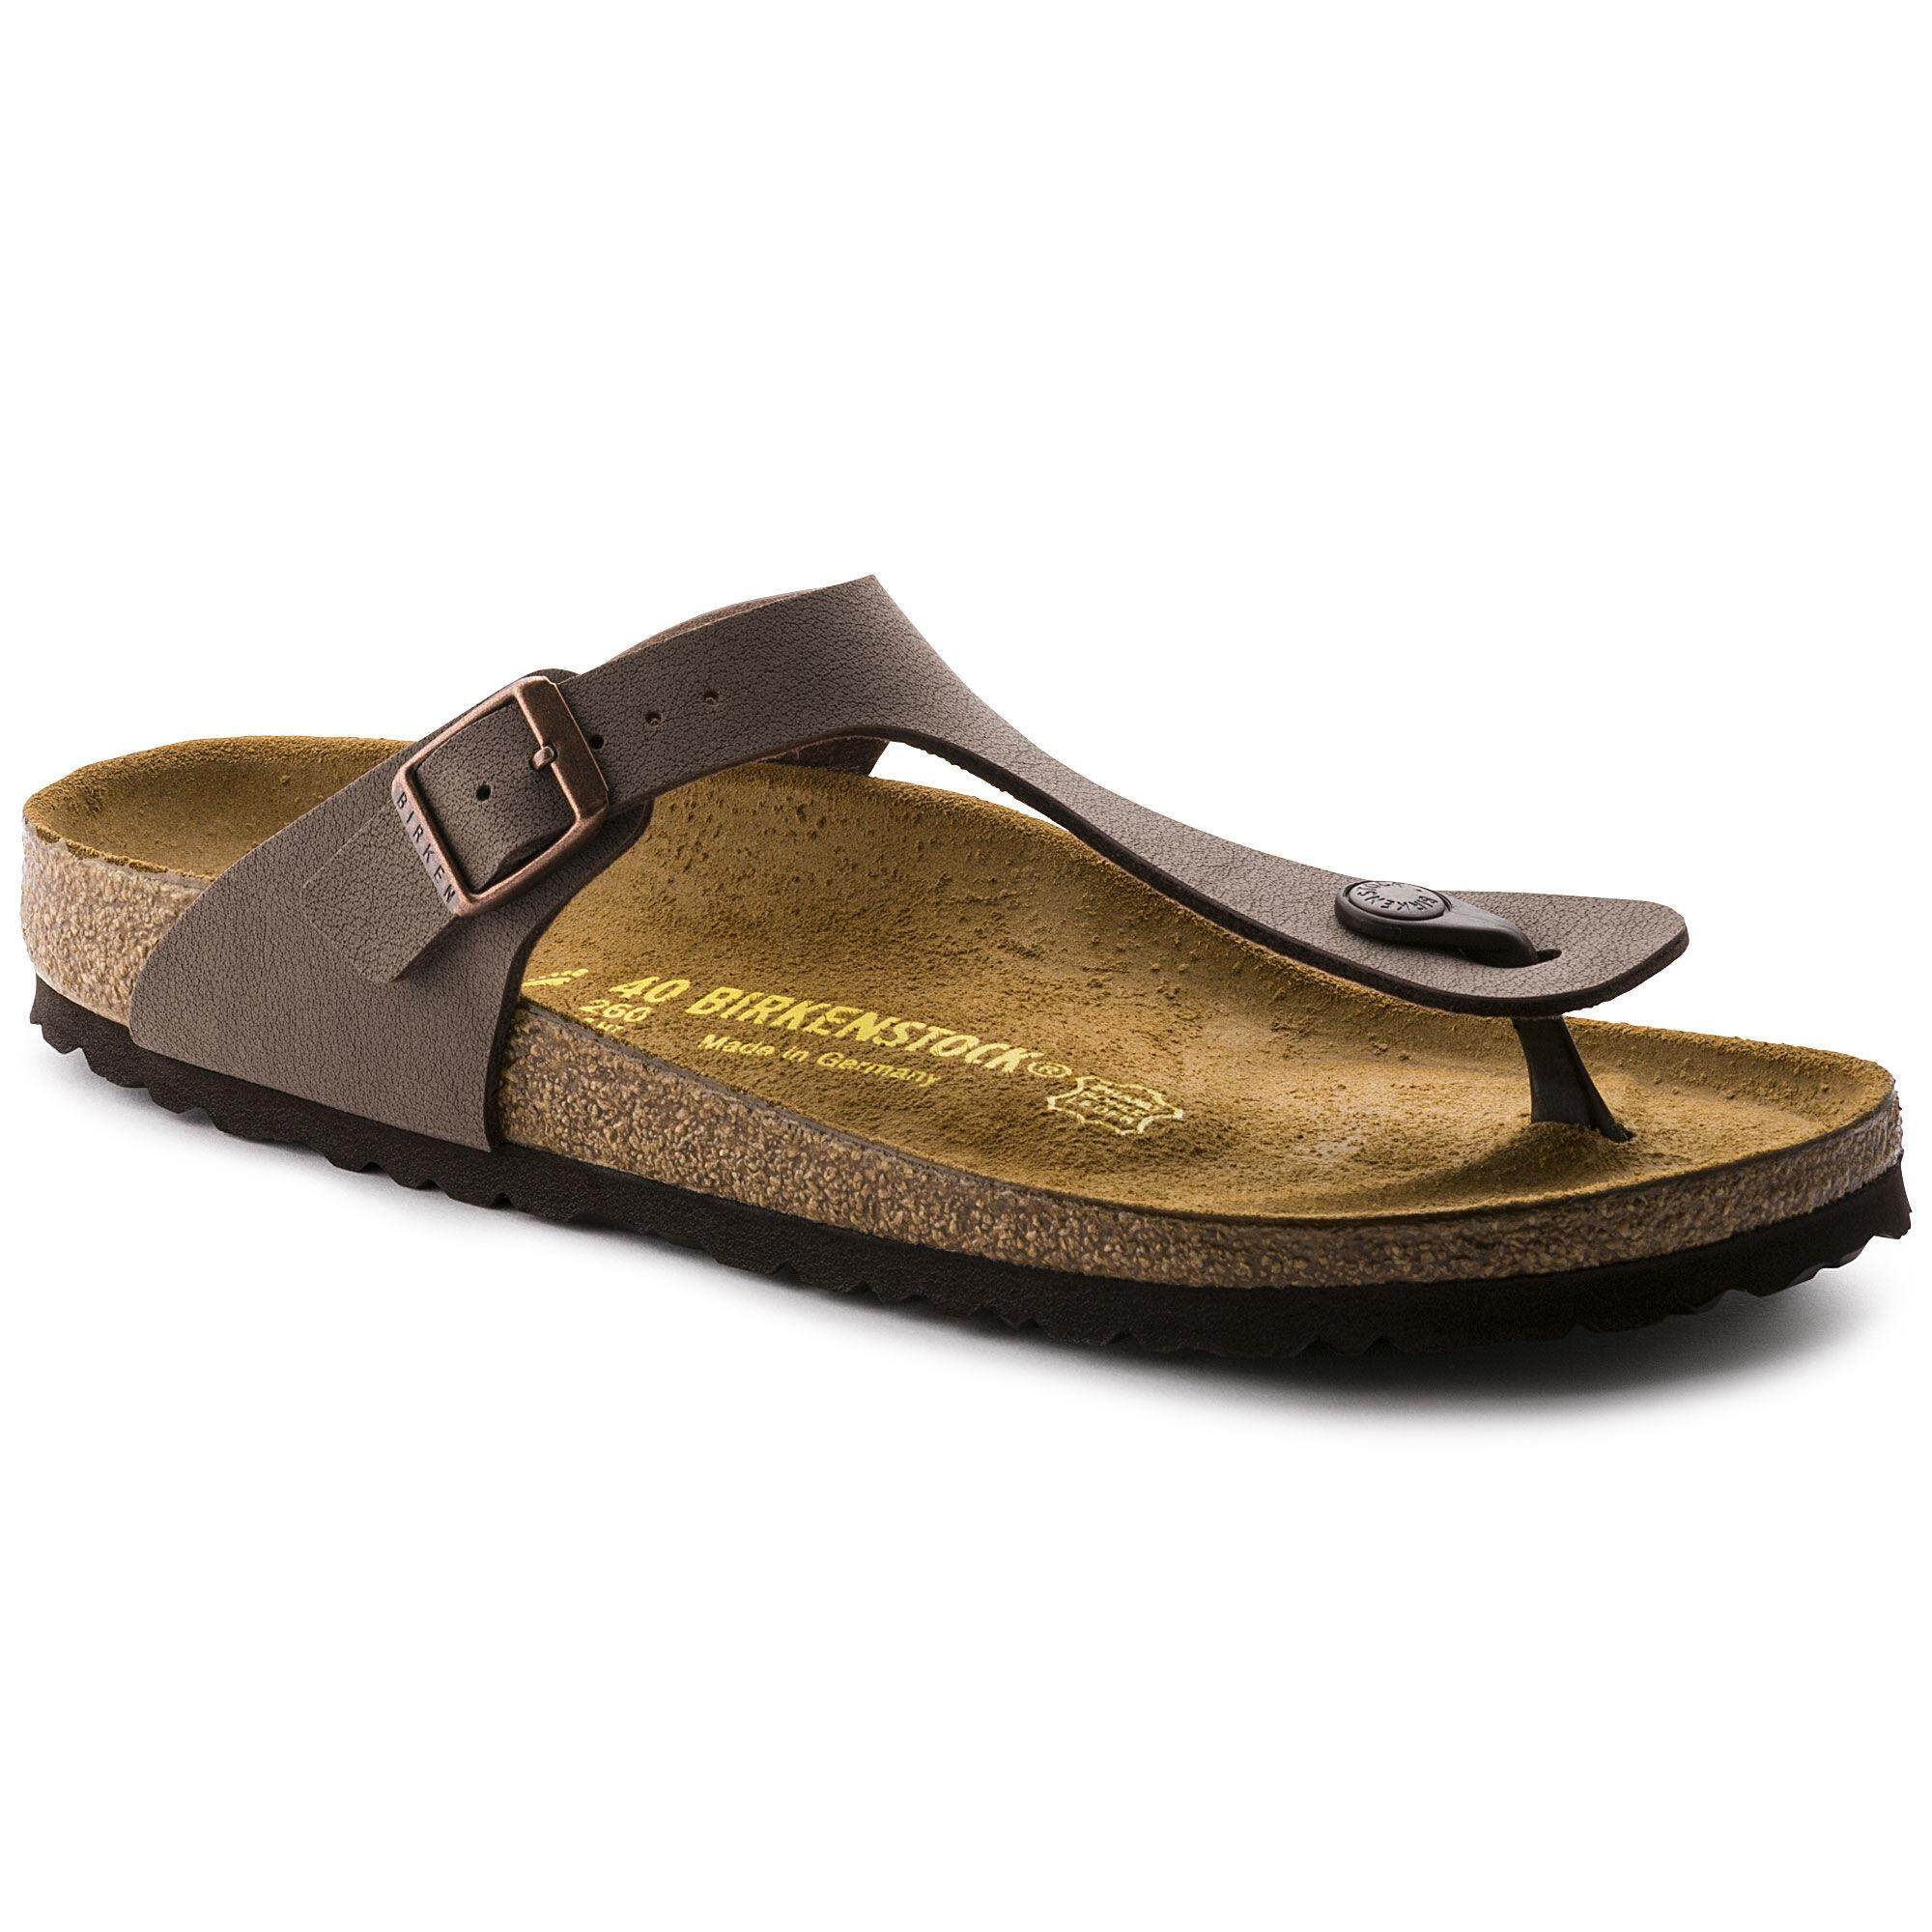 41540bbd3 Birkenstocks Men Sandals Women Thong Gizeh Birko-Flor Nubuck Mocha